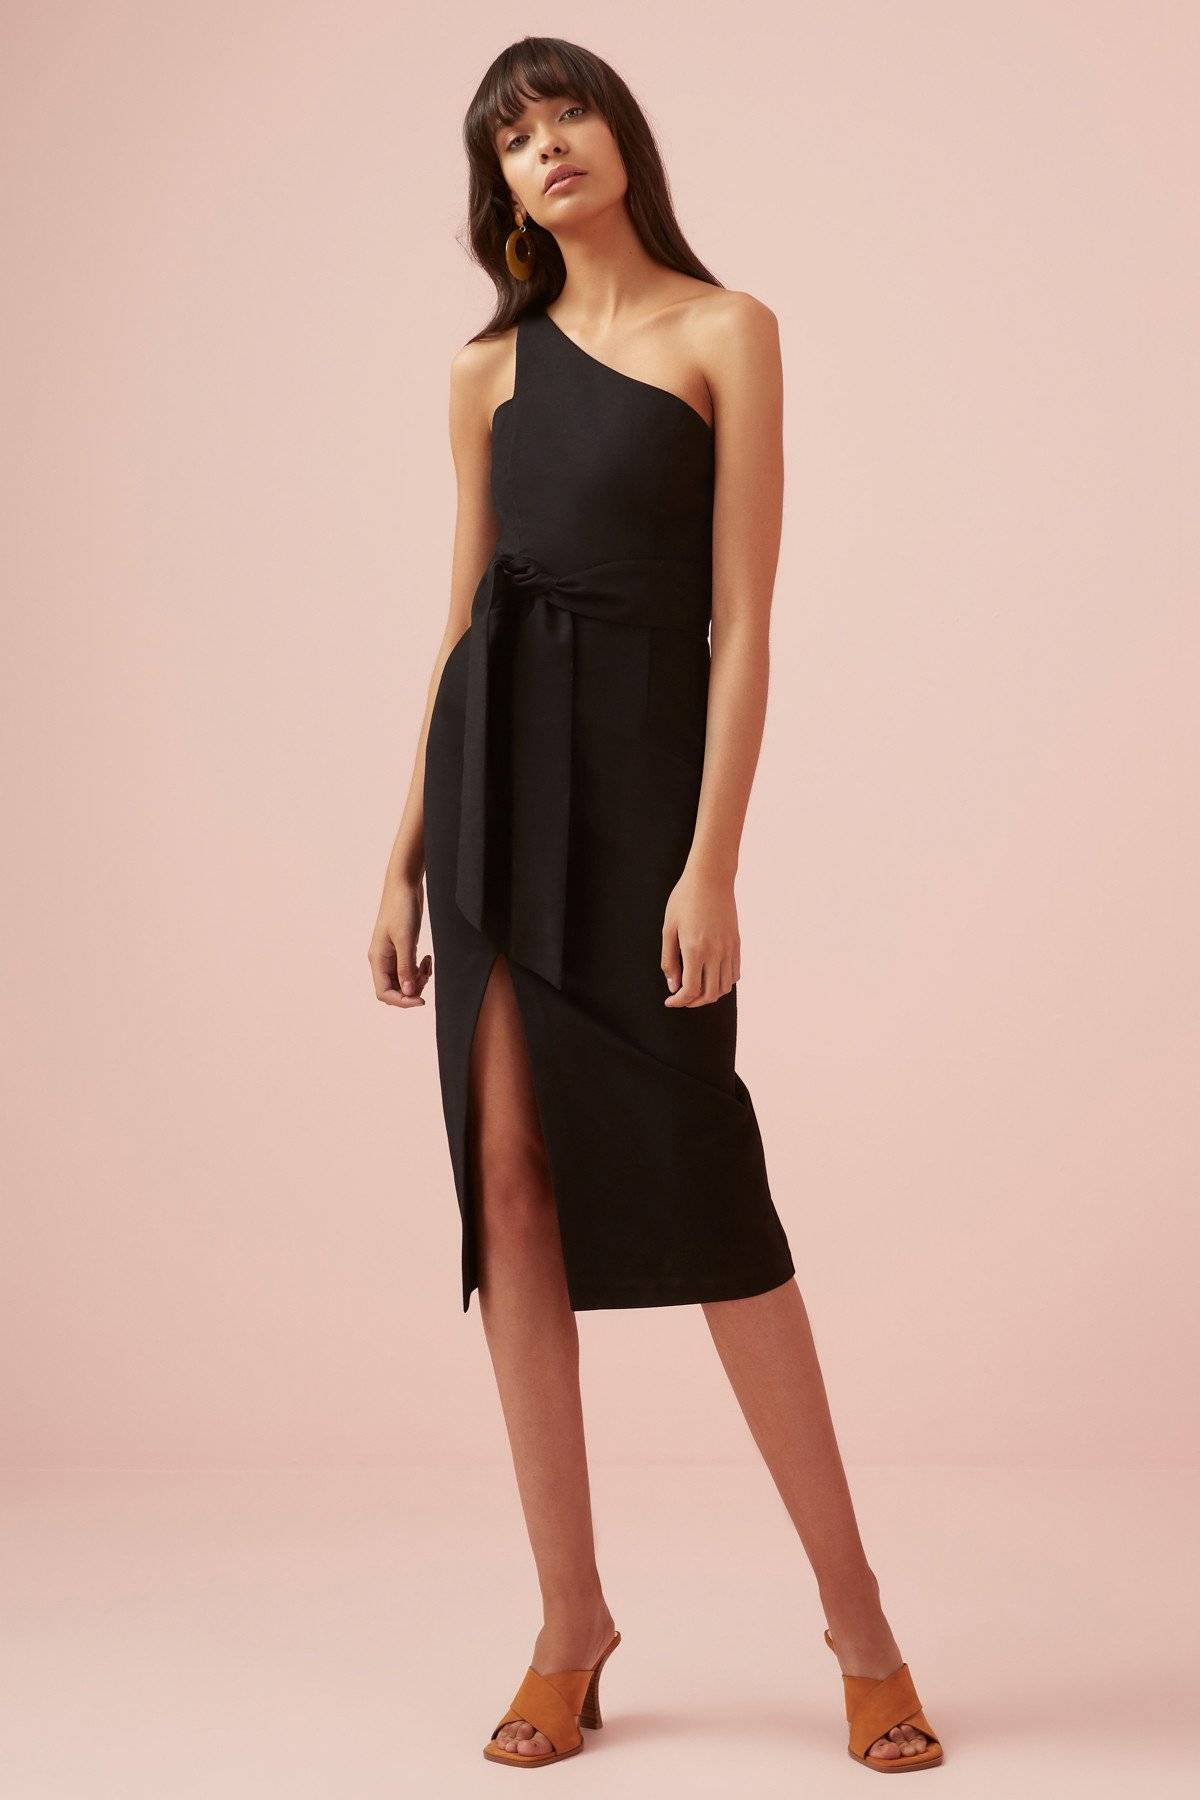 Finders Keepers Francis Dress - Black